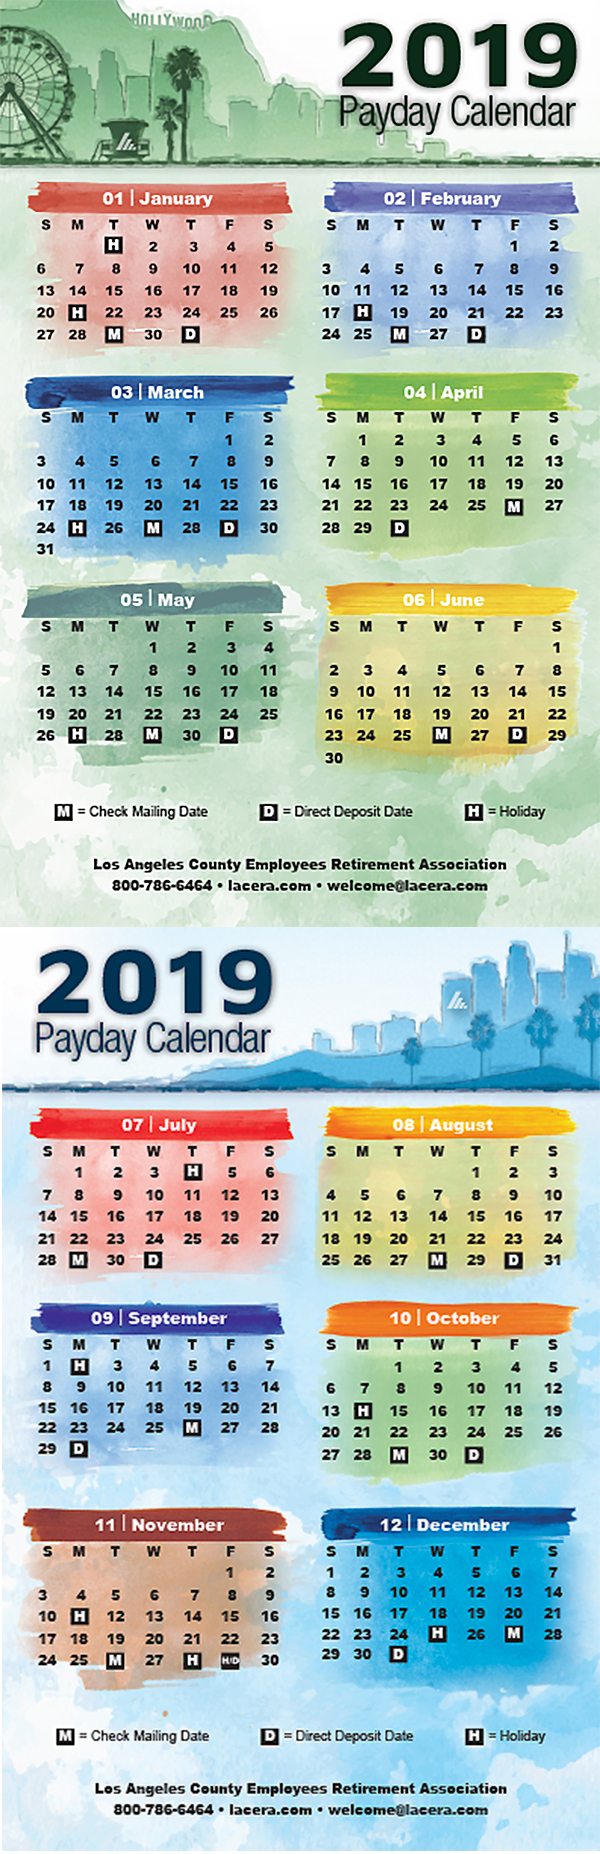 Lacera's Payday Schedule with La County Payroll Calendar 2020